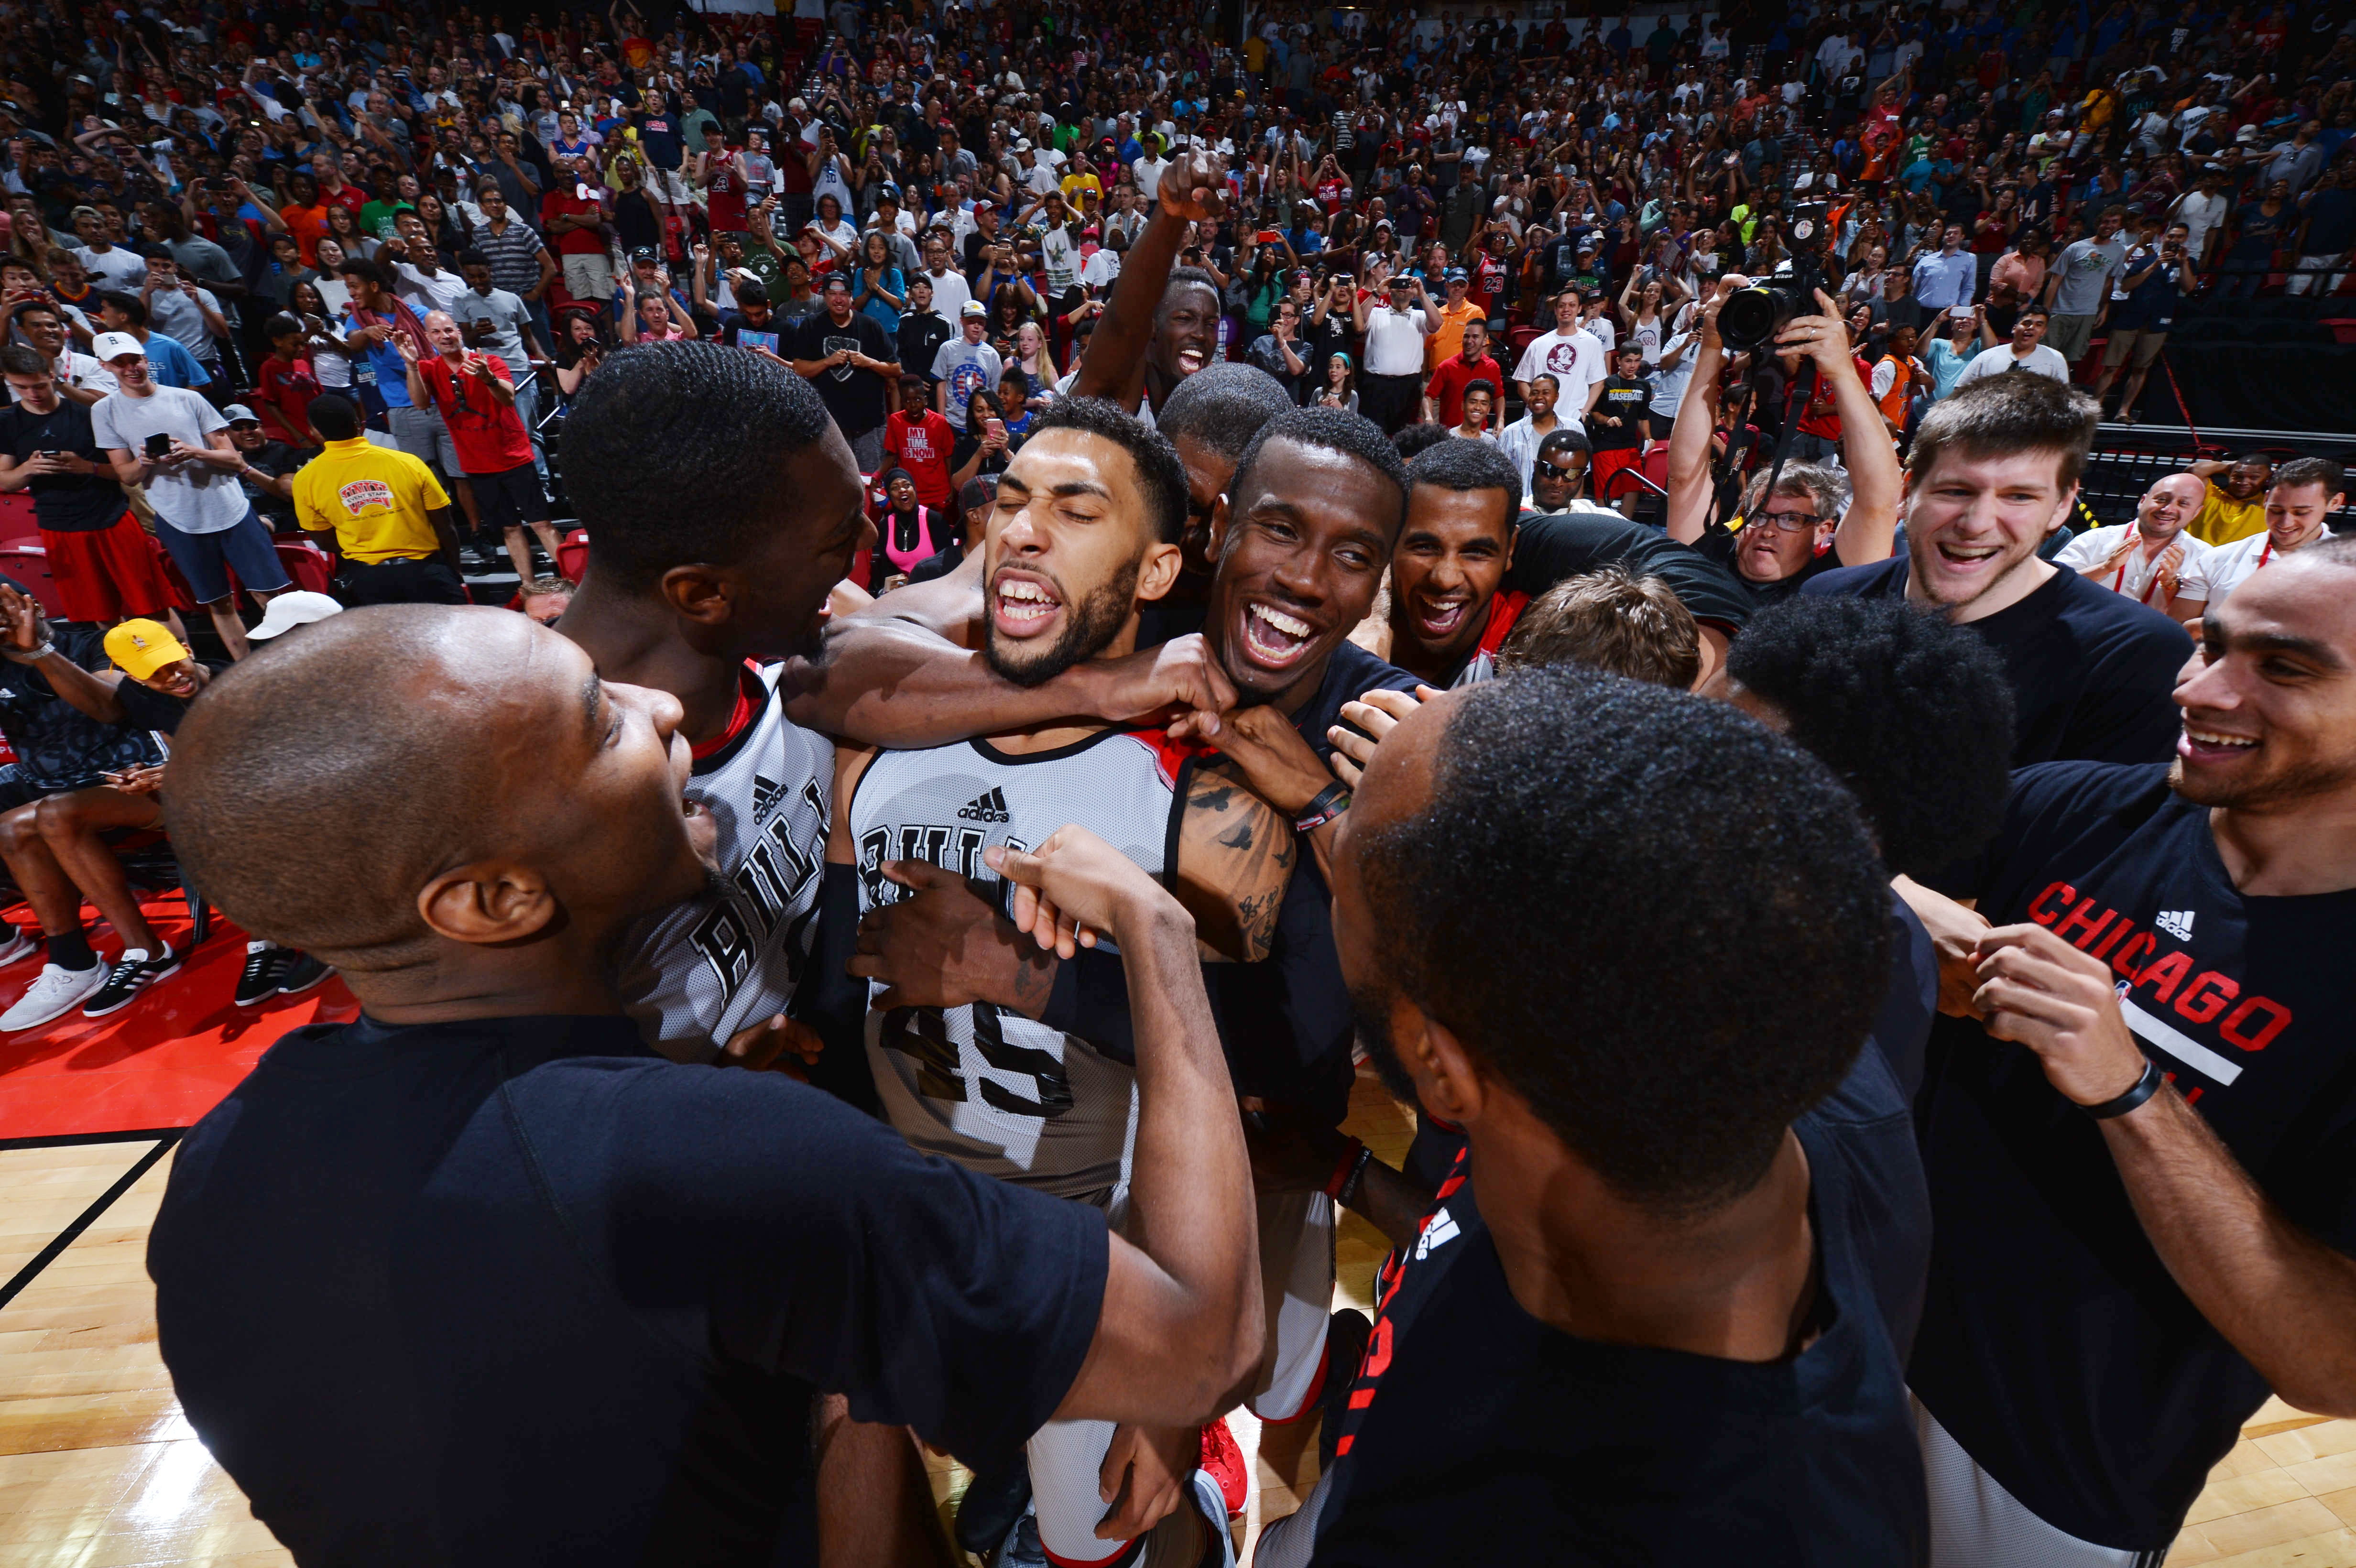 LAS VEGAS, NV - JULY 18:  Denzel Valentine #45 of the Chicago Bulls celebrates with his teammates after hitting the game winning shot against the Minnesota Timberwolves during the 2016 NBA Las Vegas Summer League game on July 18, 2016 at the Thomas & Mack